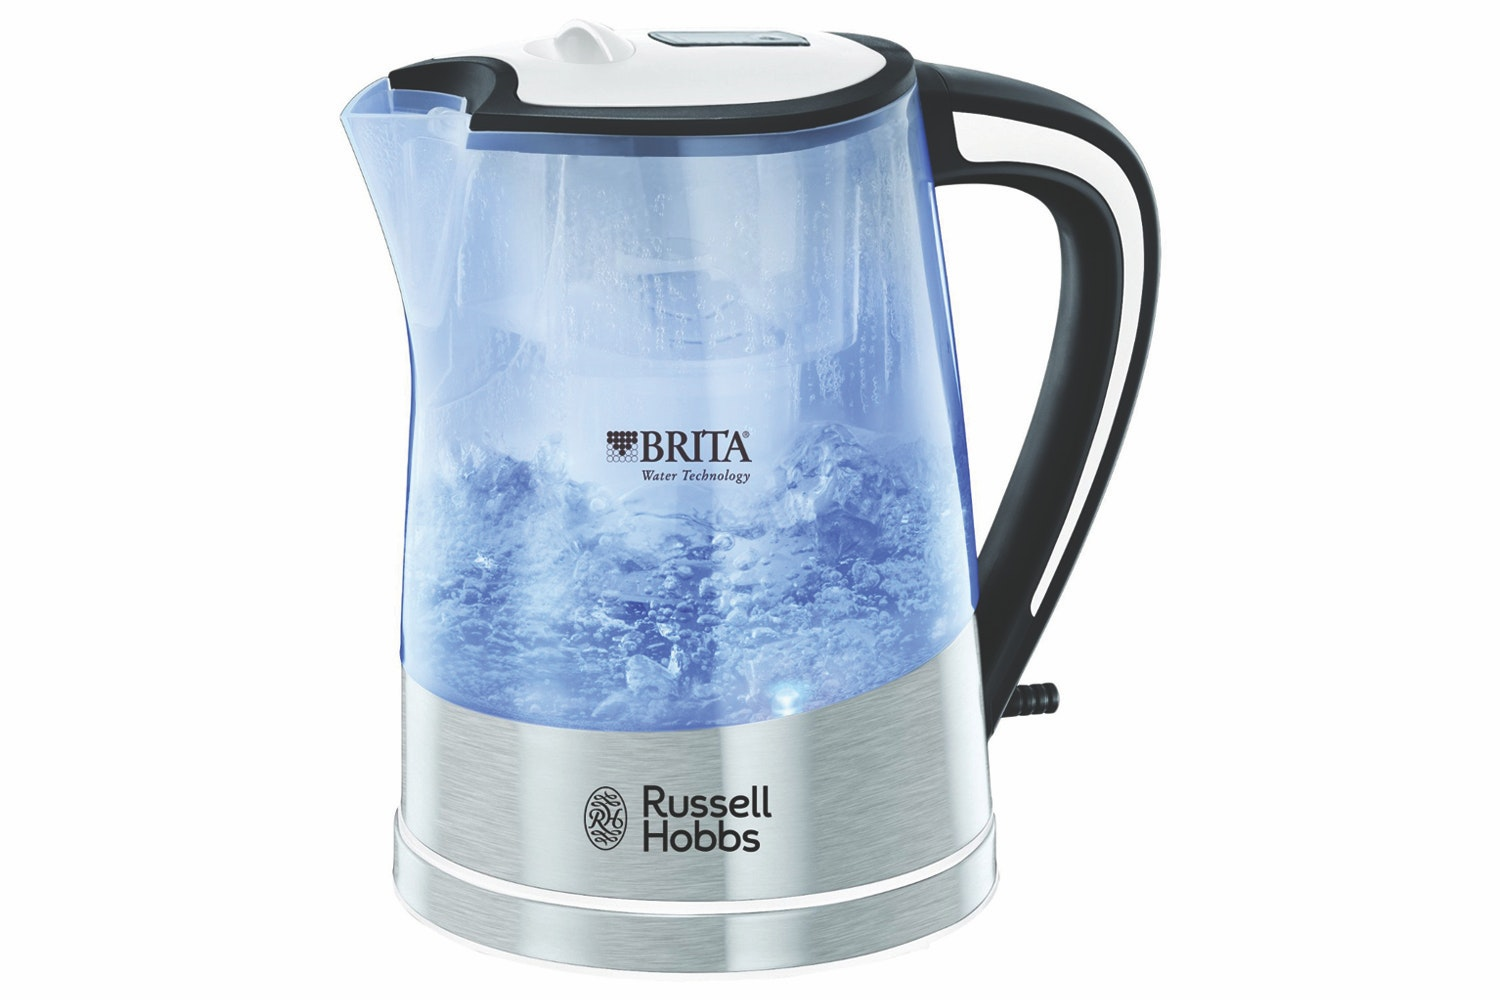 Russell Hobbs 1.0L Purity Kettle | White